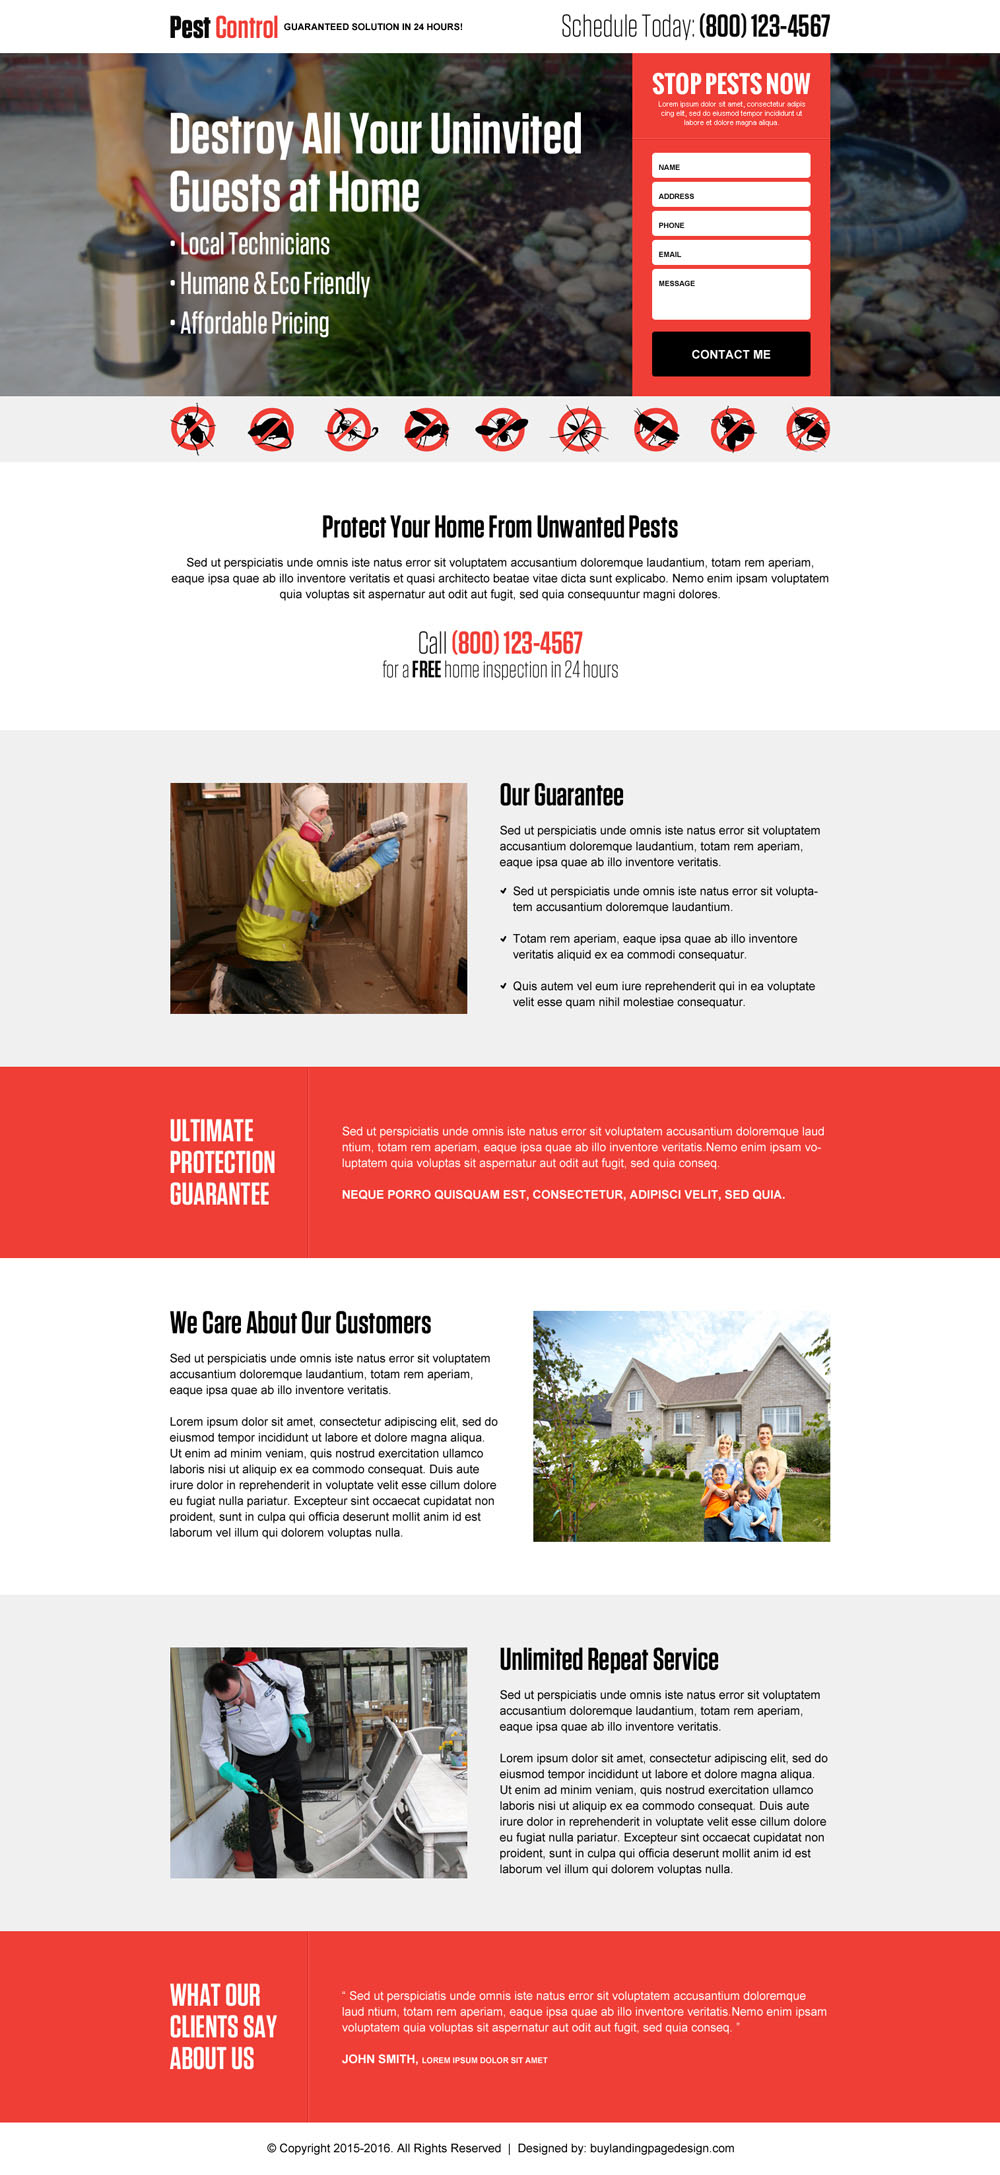 pest-control-for-home-lead-capture-converting-landing-page-design-002